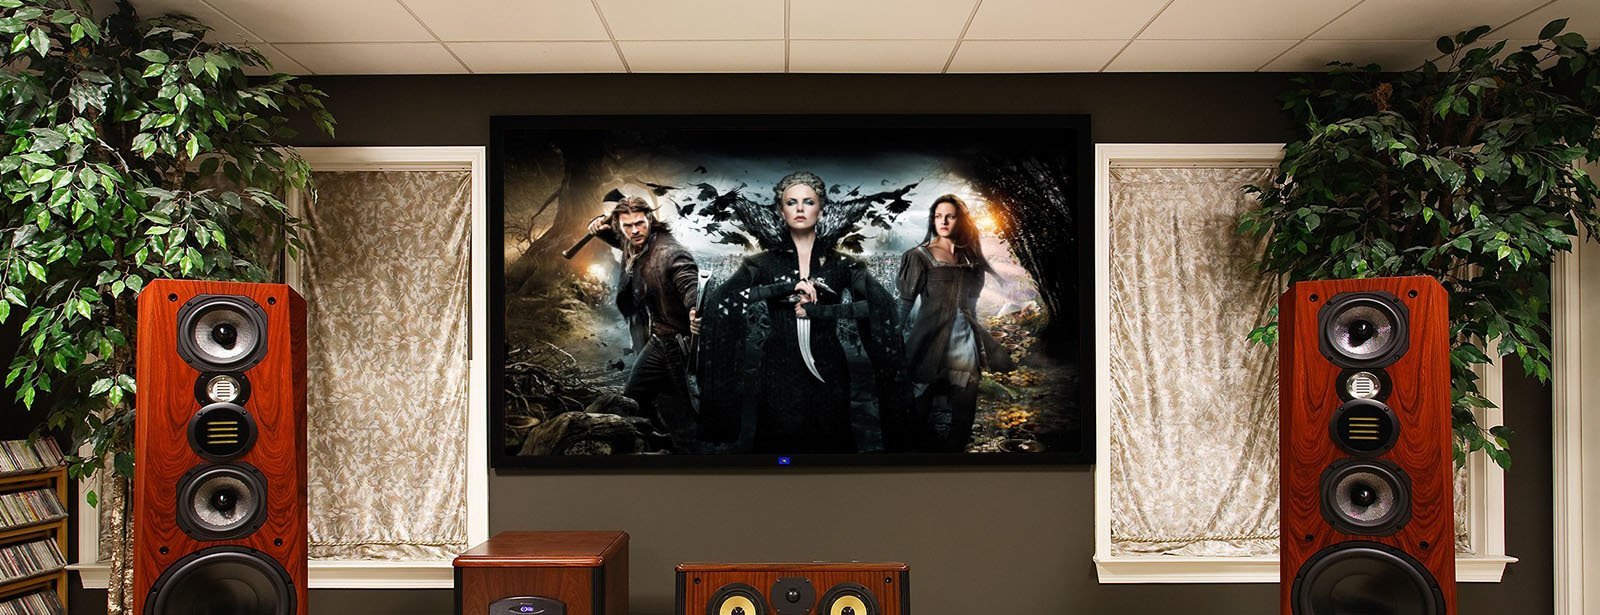 category-Large Cinema Fixed Frame Projection Screens | Find Projector Screen-XY Screens-img